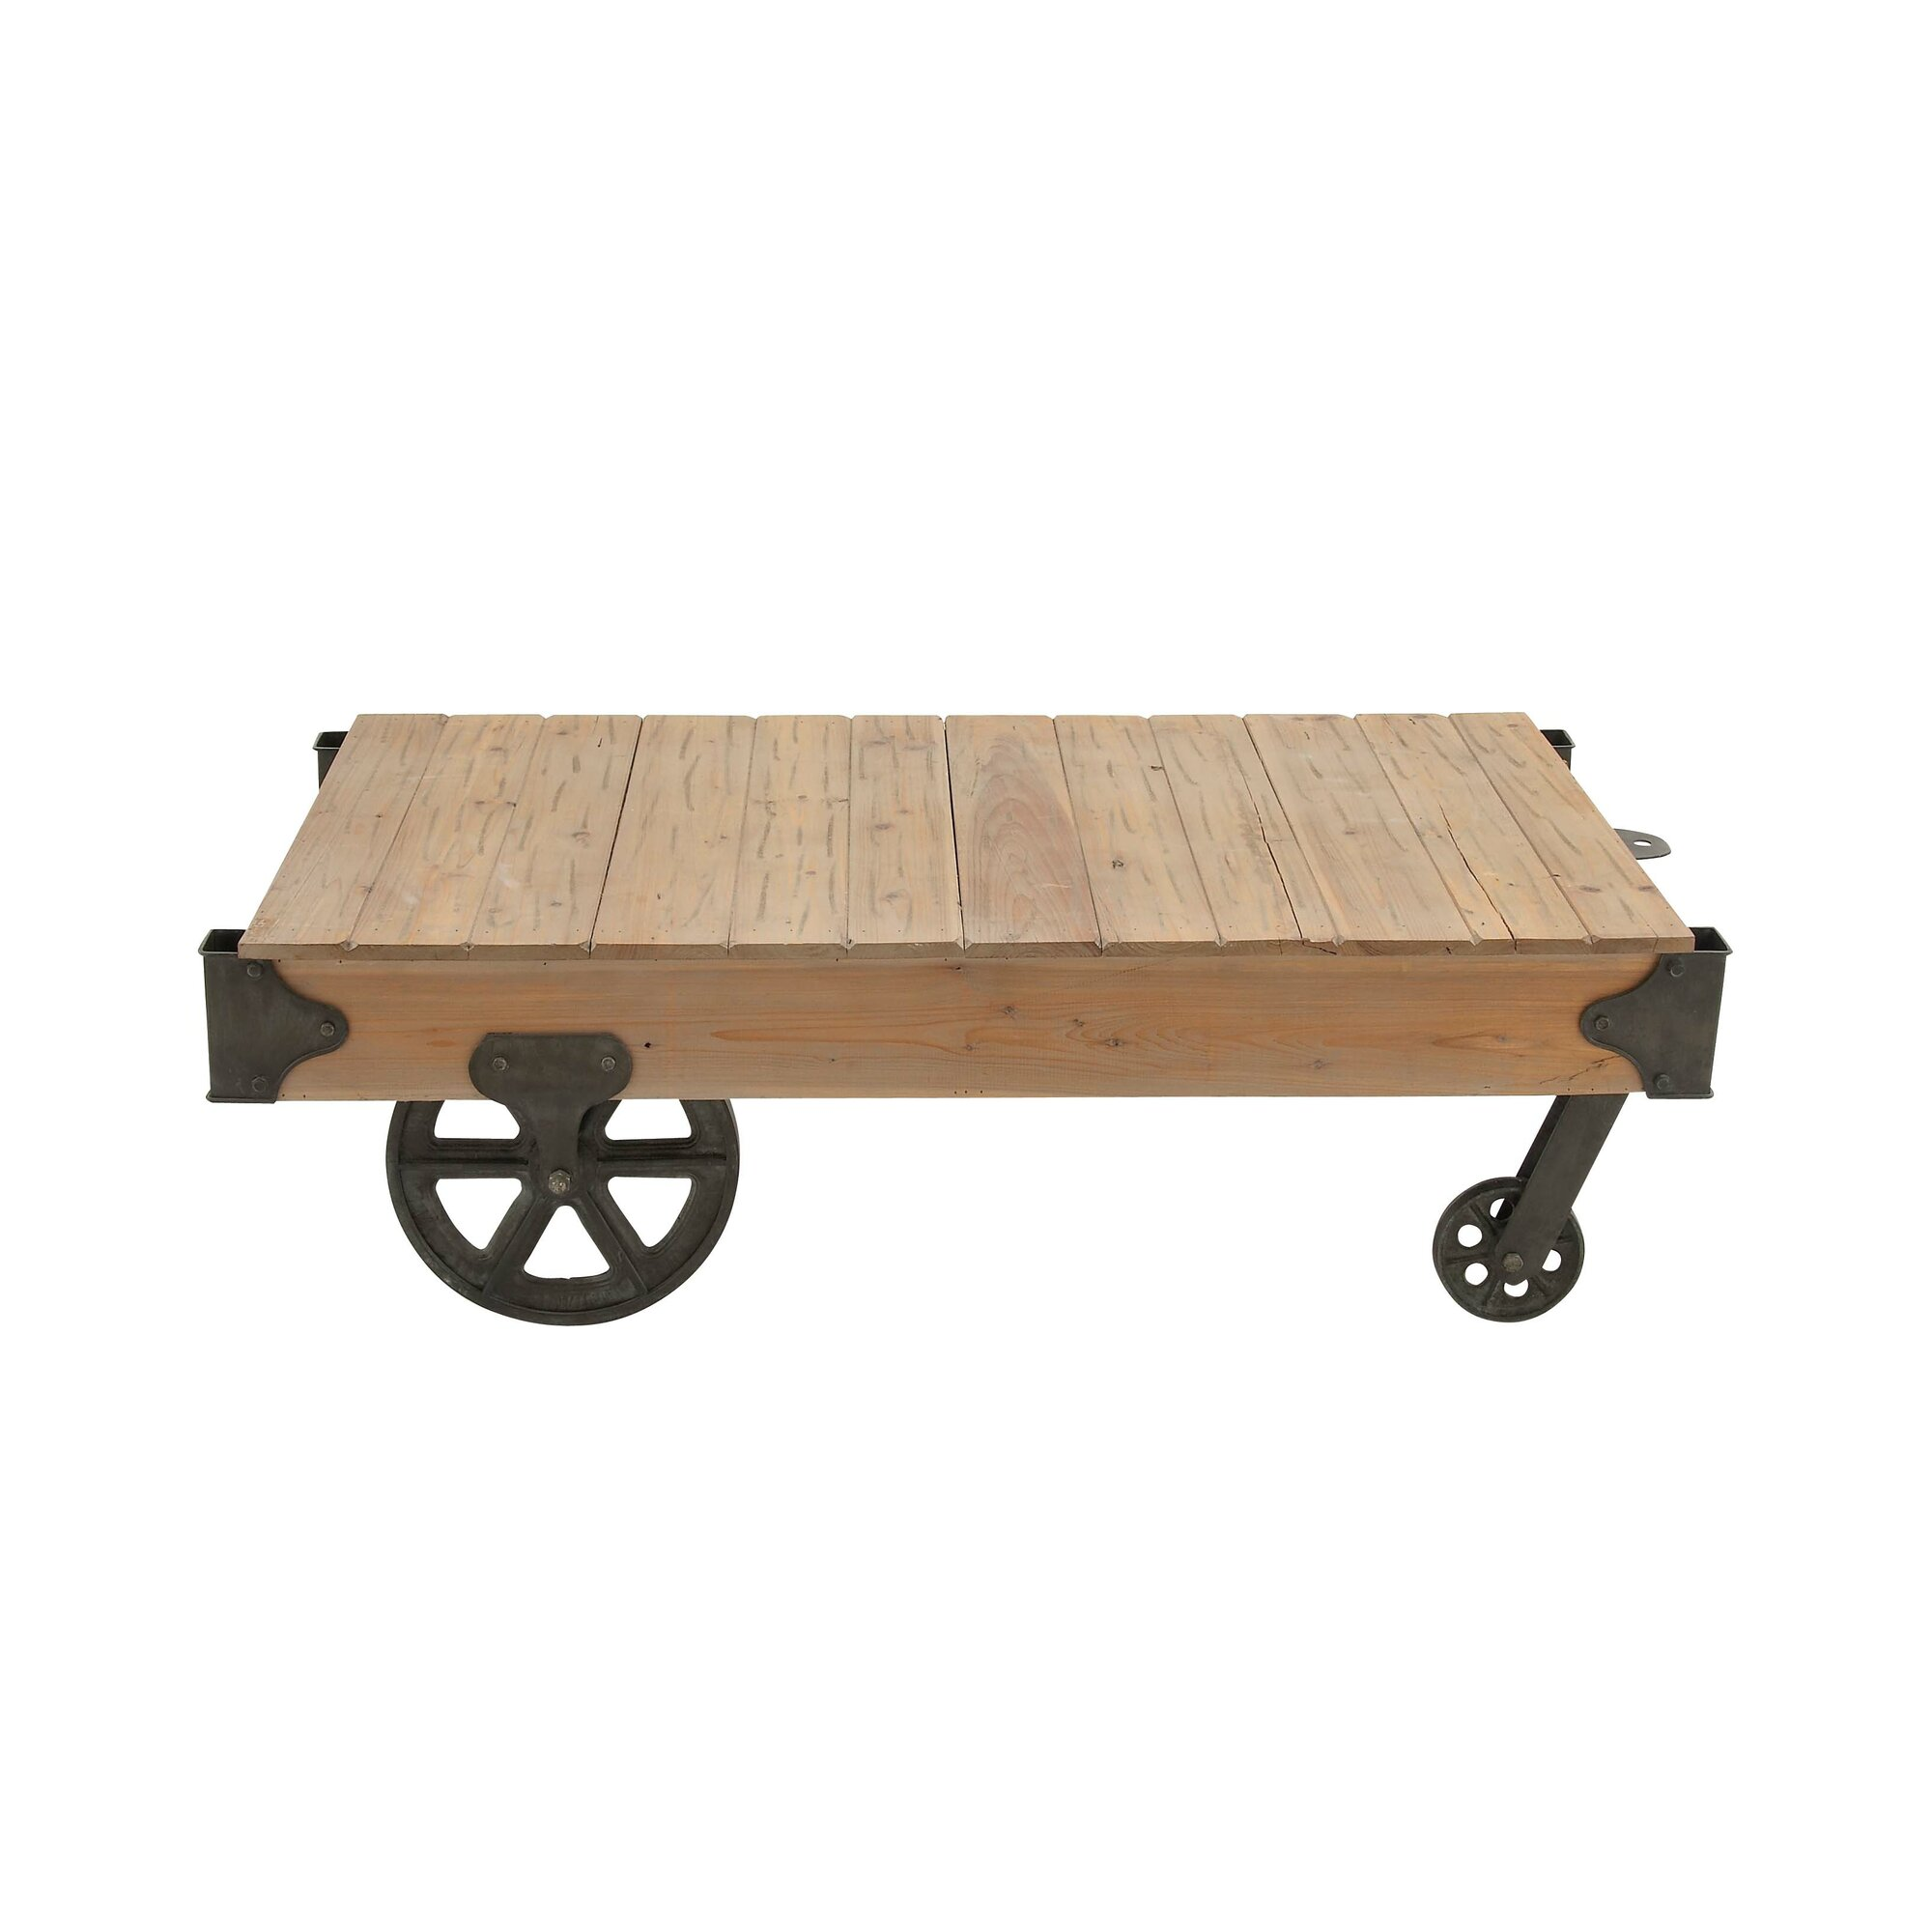 Trolley cart coffee table choice image coffee table design ideas trolley cart coffee table instacoffeetable trolley cart coffee table geotapseo choice image geotapseo Choice Image